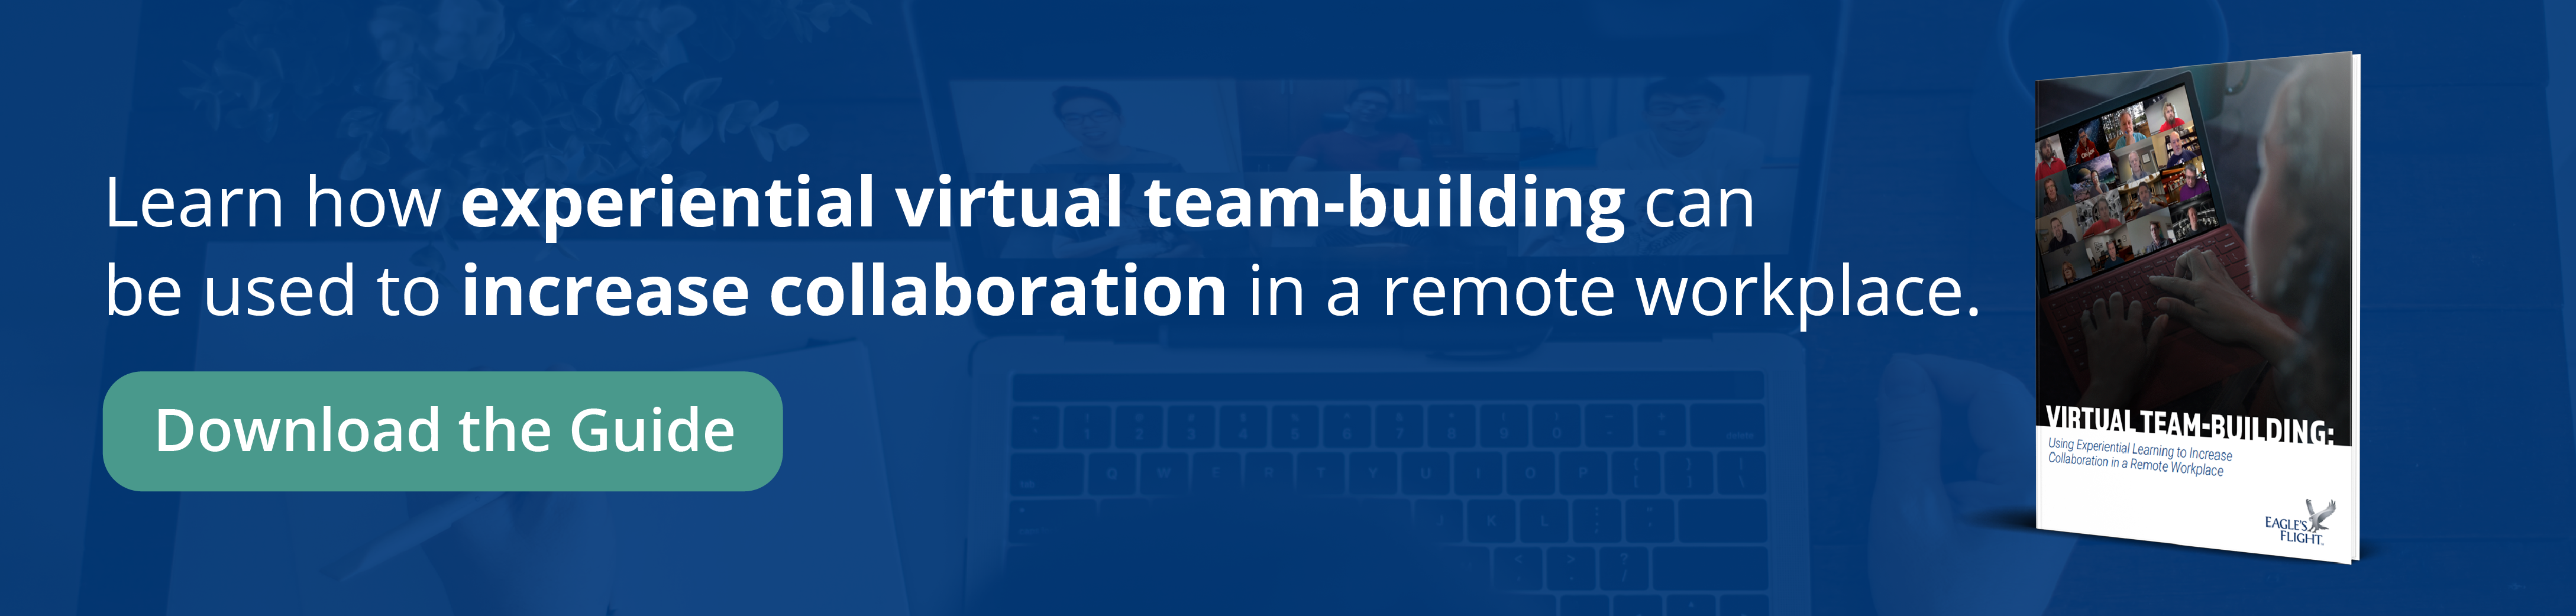 Download Guide: Virtual Team Building: Using Experiential Learning to Increase Collaboration in a Remote Workforce